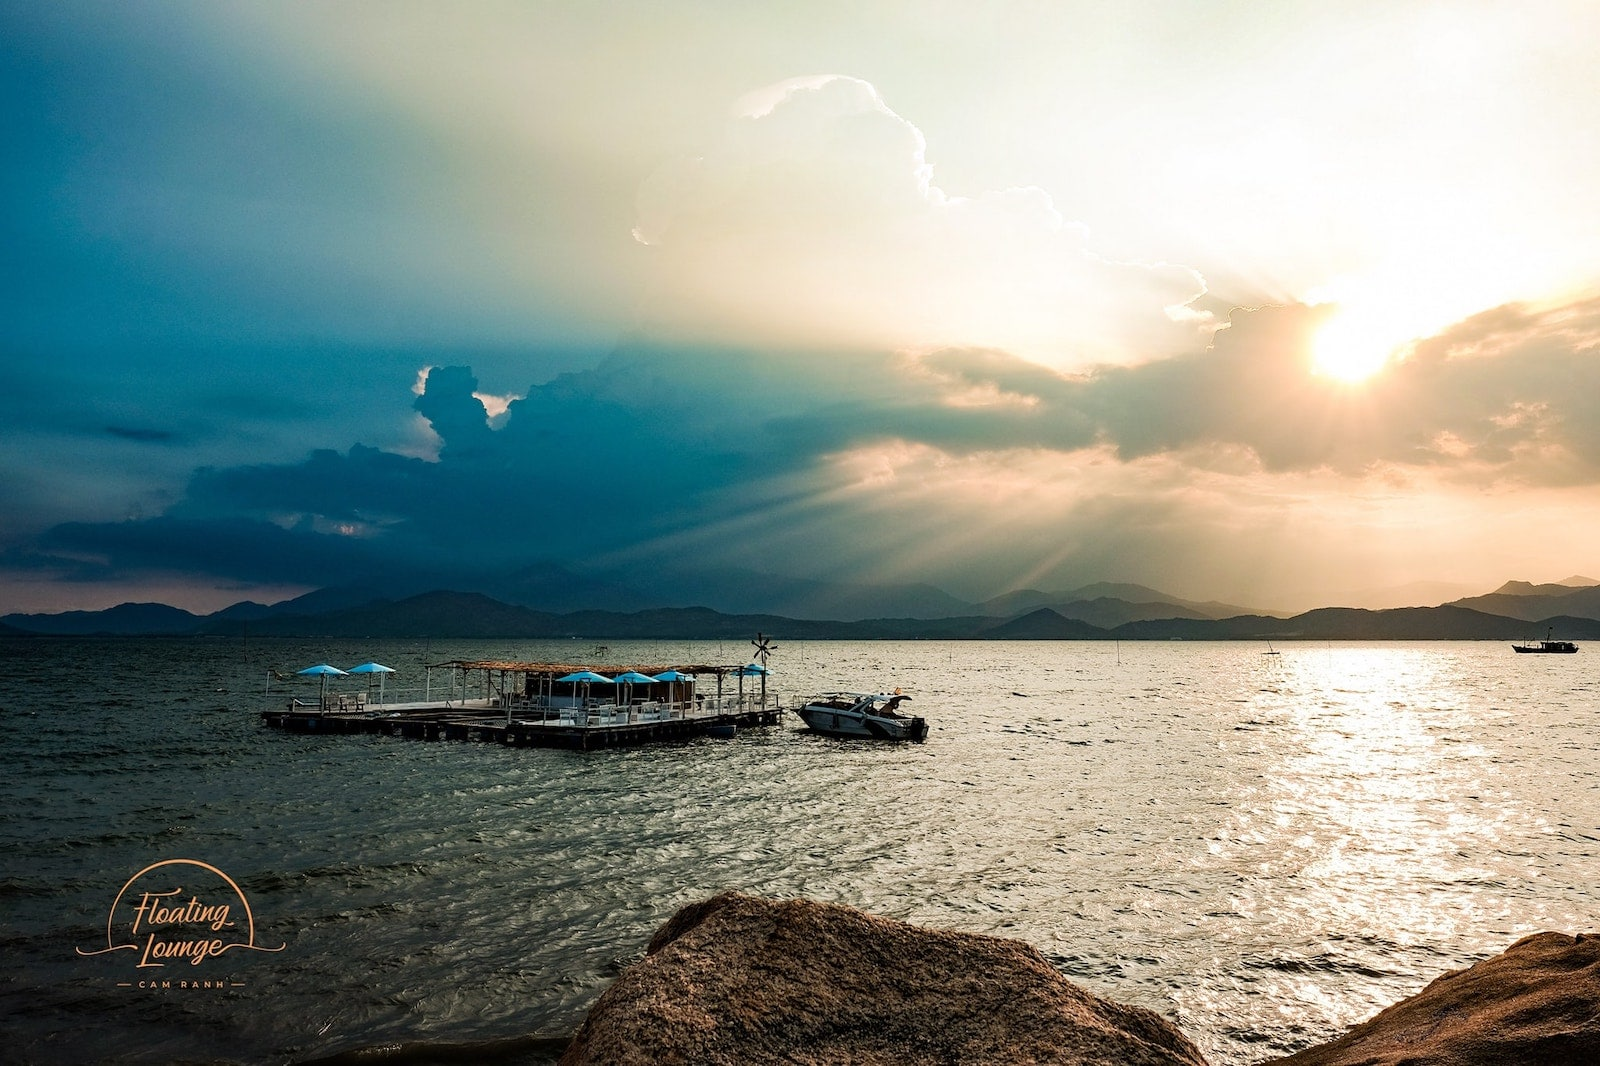 Image of the Floating Lounge Cam Ranh in Vietnam